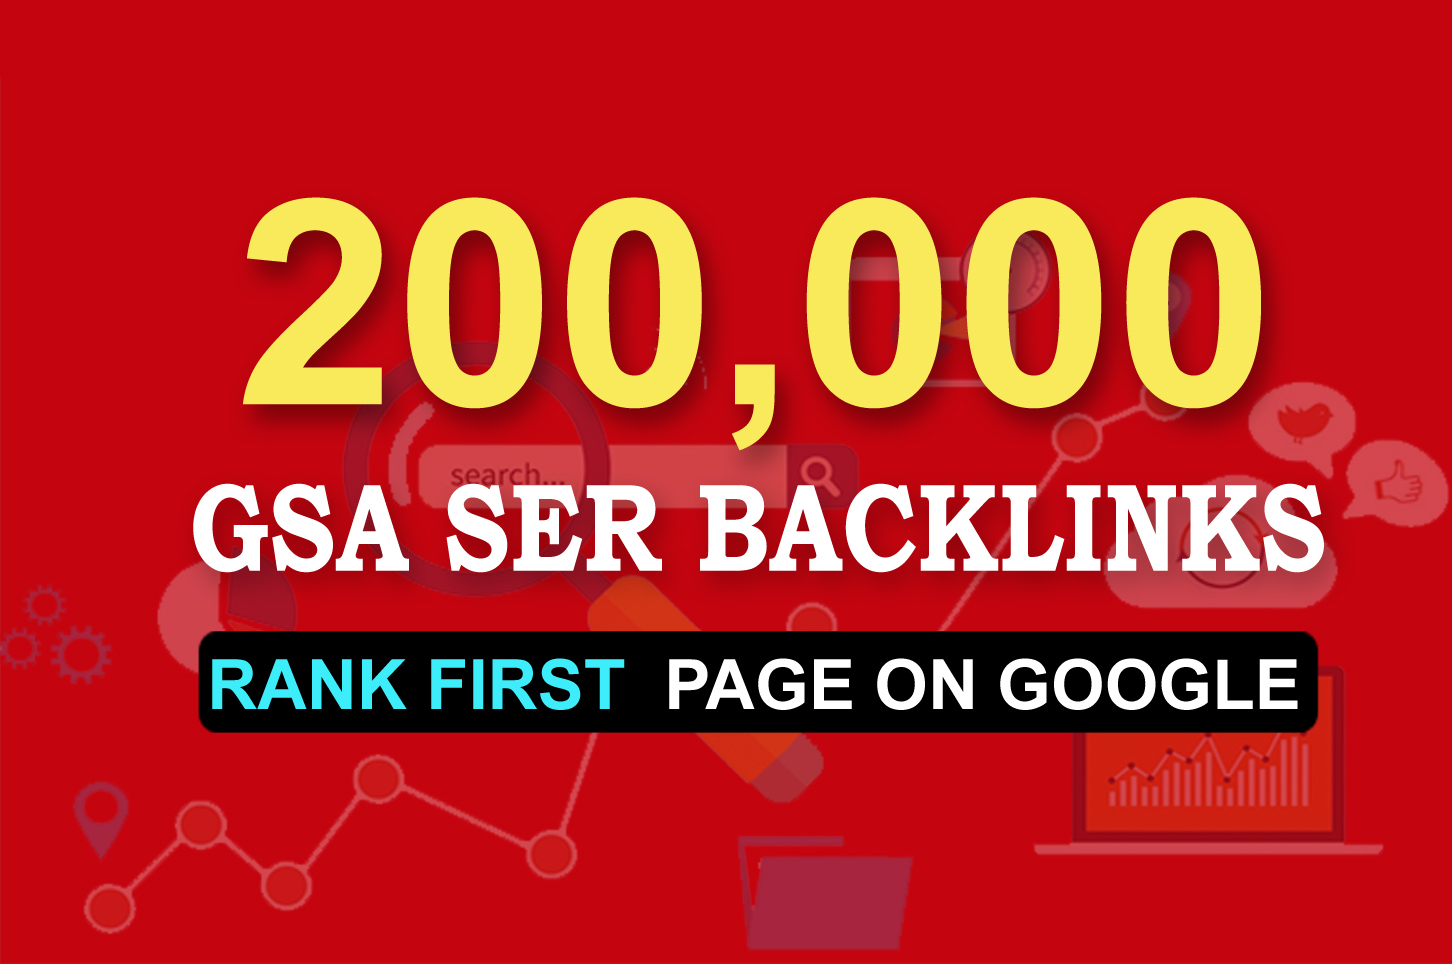 GSA Blast Backlinks Provide 200,000 Gsa Ser Backlinks For Ranking Website